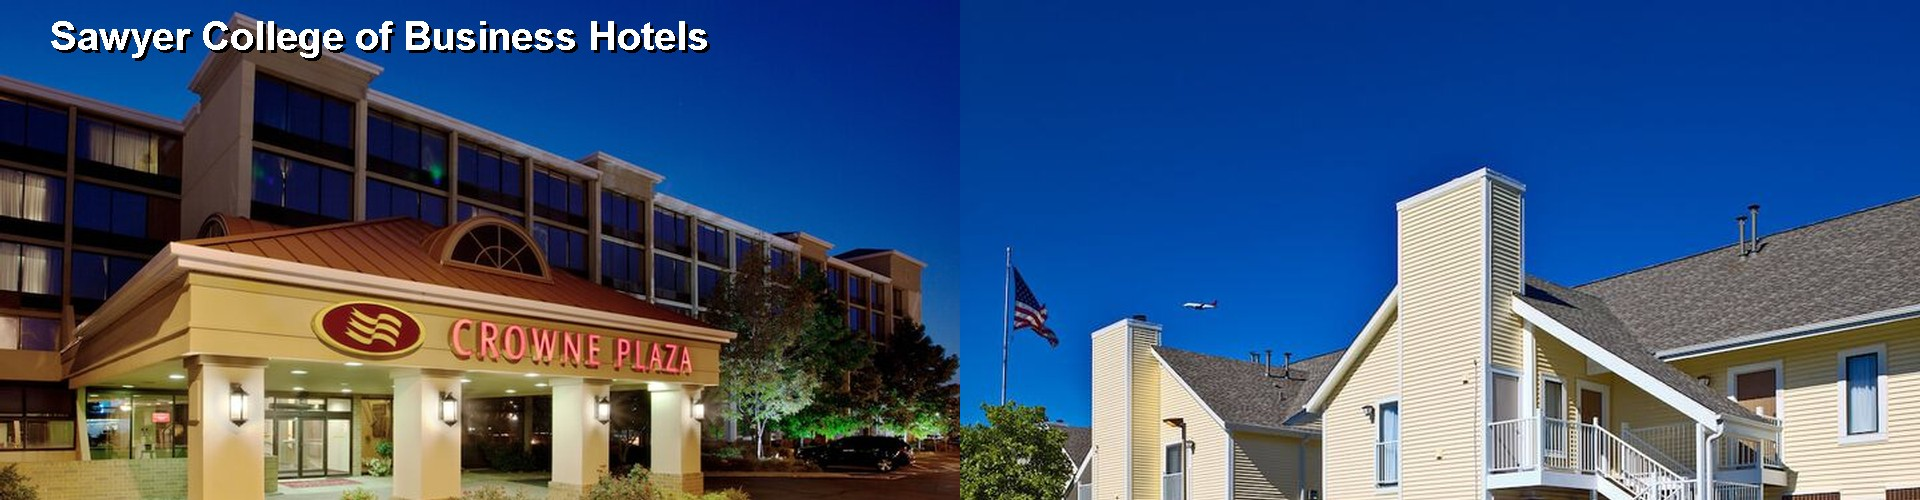 5 Best Hotels near Sawyer College of Business